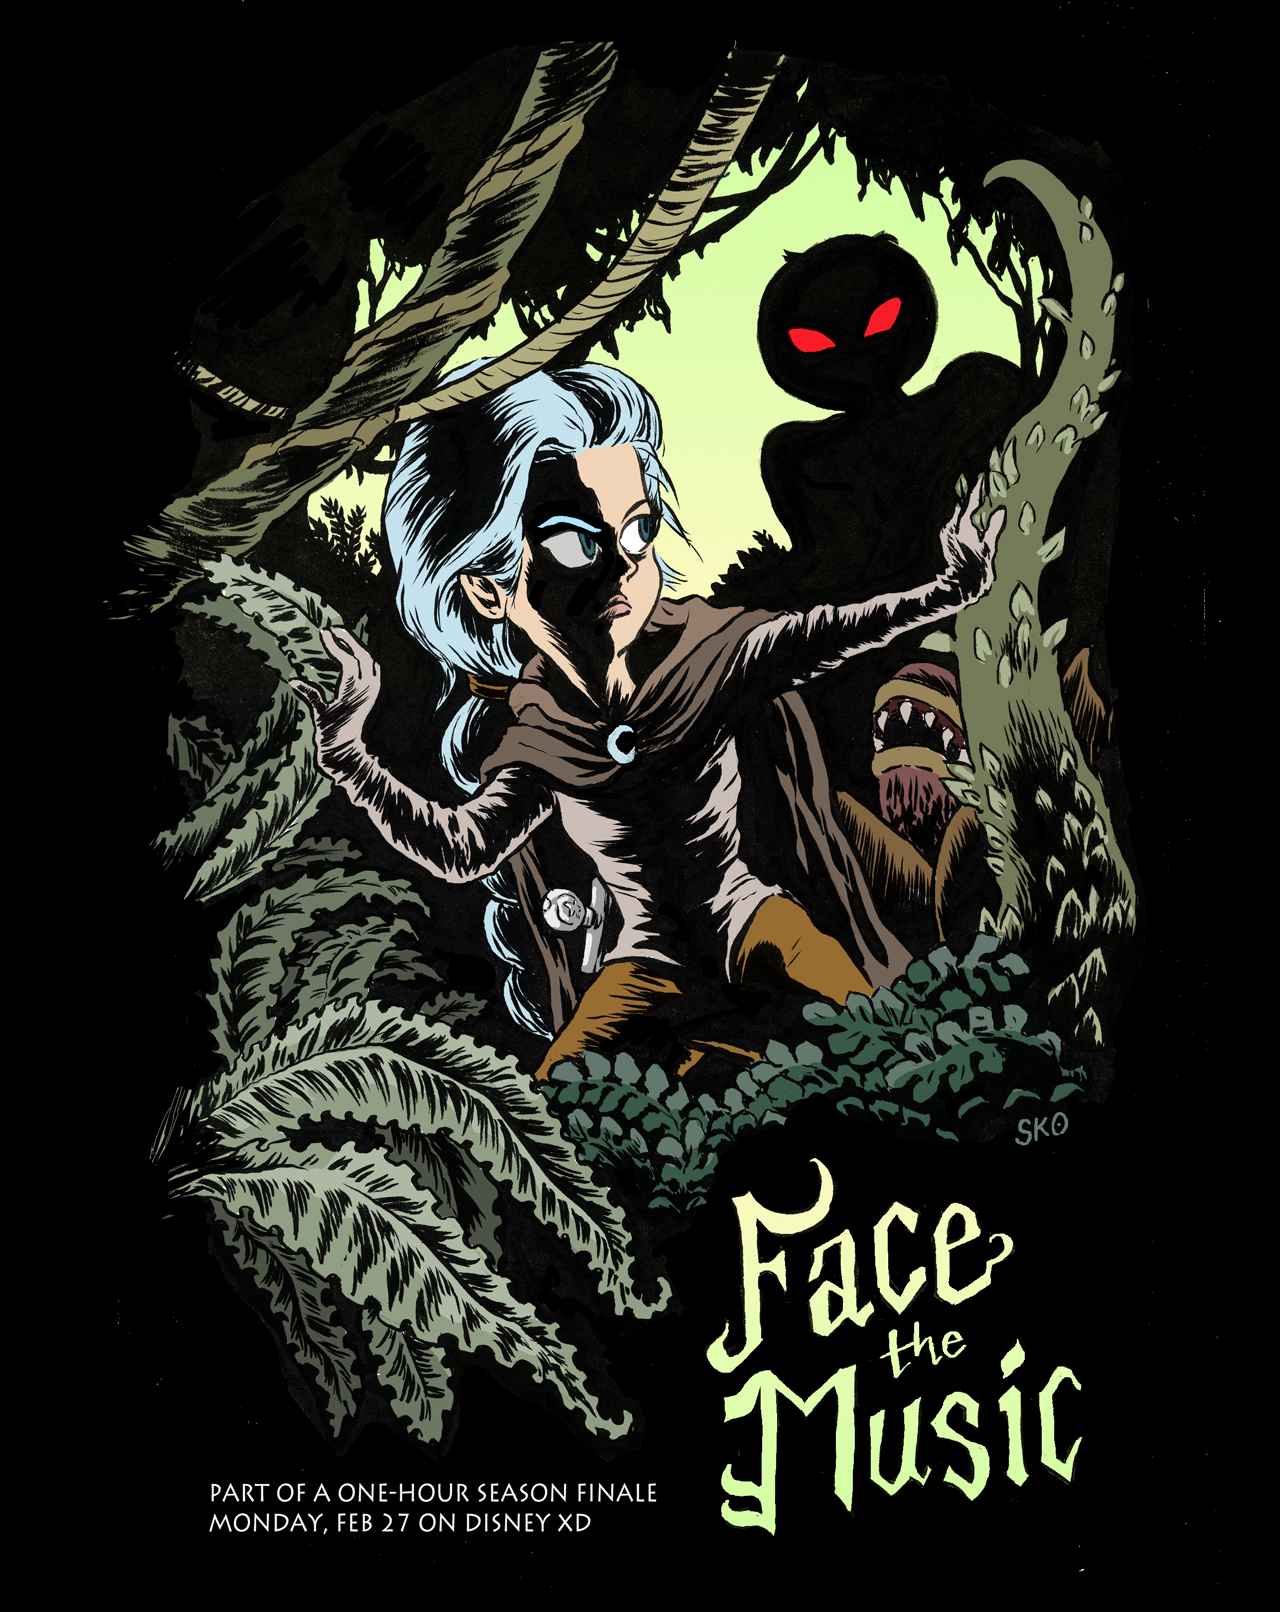 Face the Music/Gallery